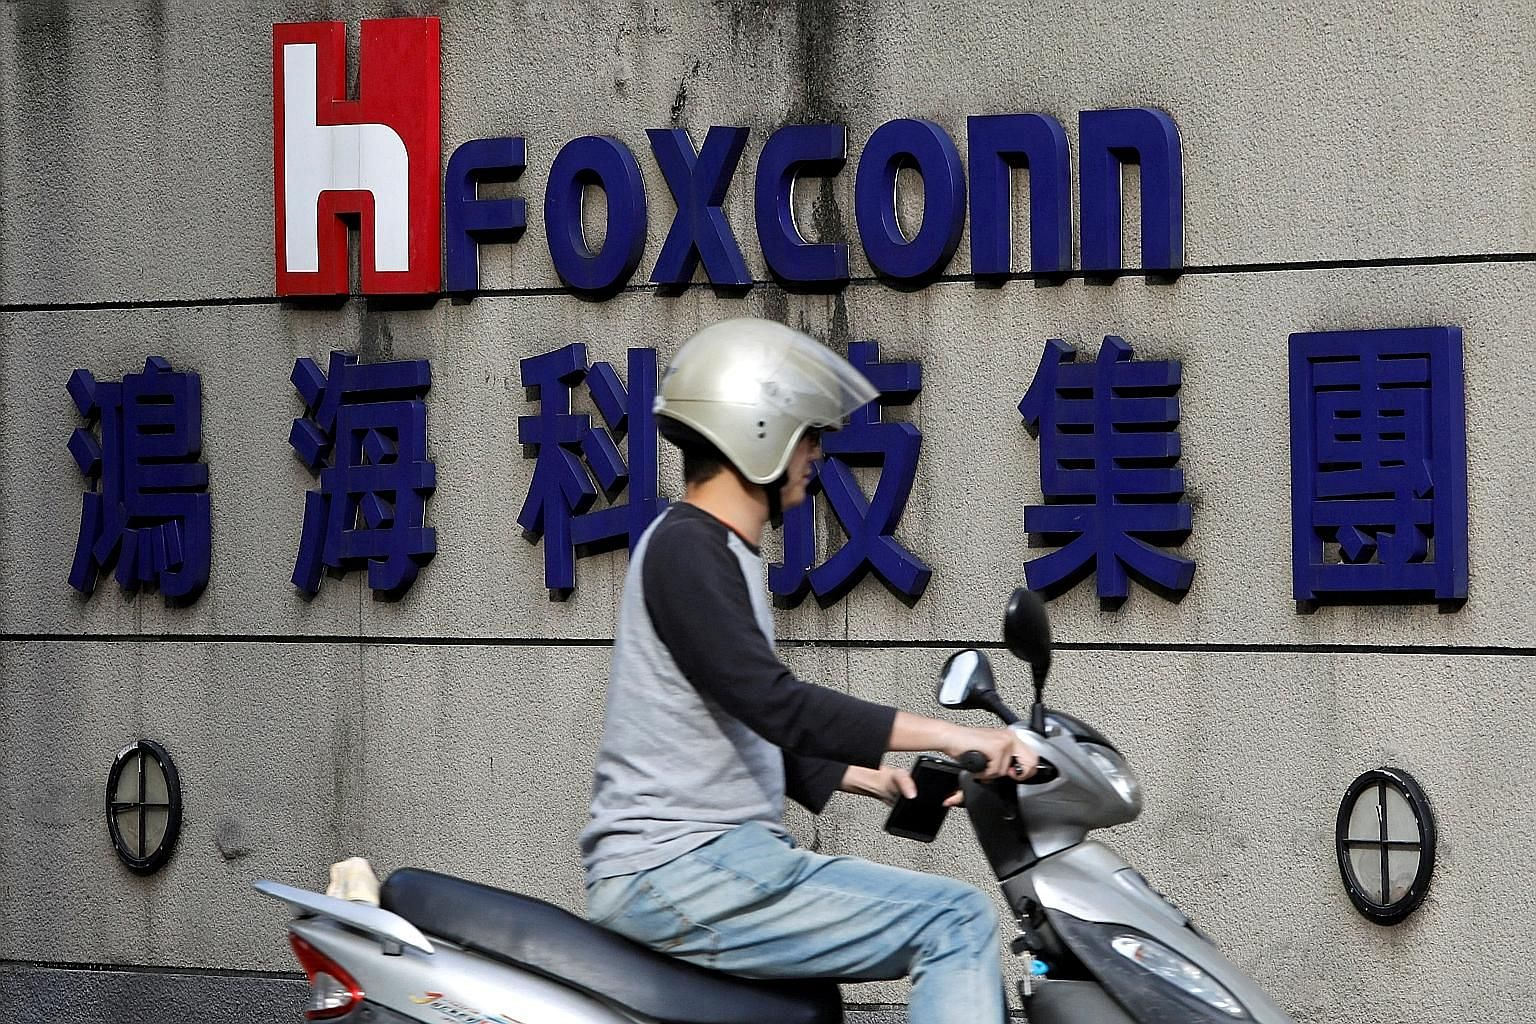 Taiwanese contract electronics manufacturer Foxconn is not only caught in the middle of the escalating US-China trade war, but also trying to come to terms with the impact of AI, which is leading to a shift in the market away from the mass production